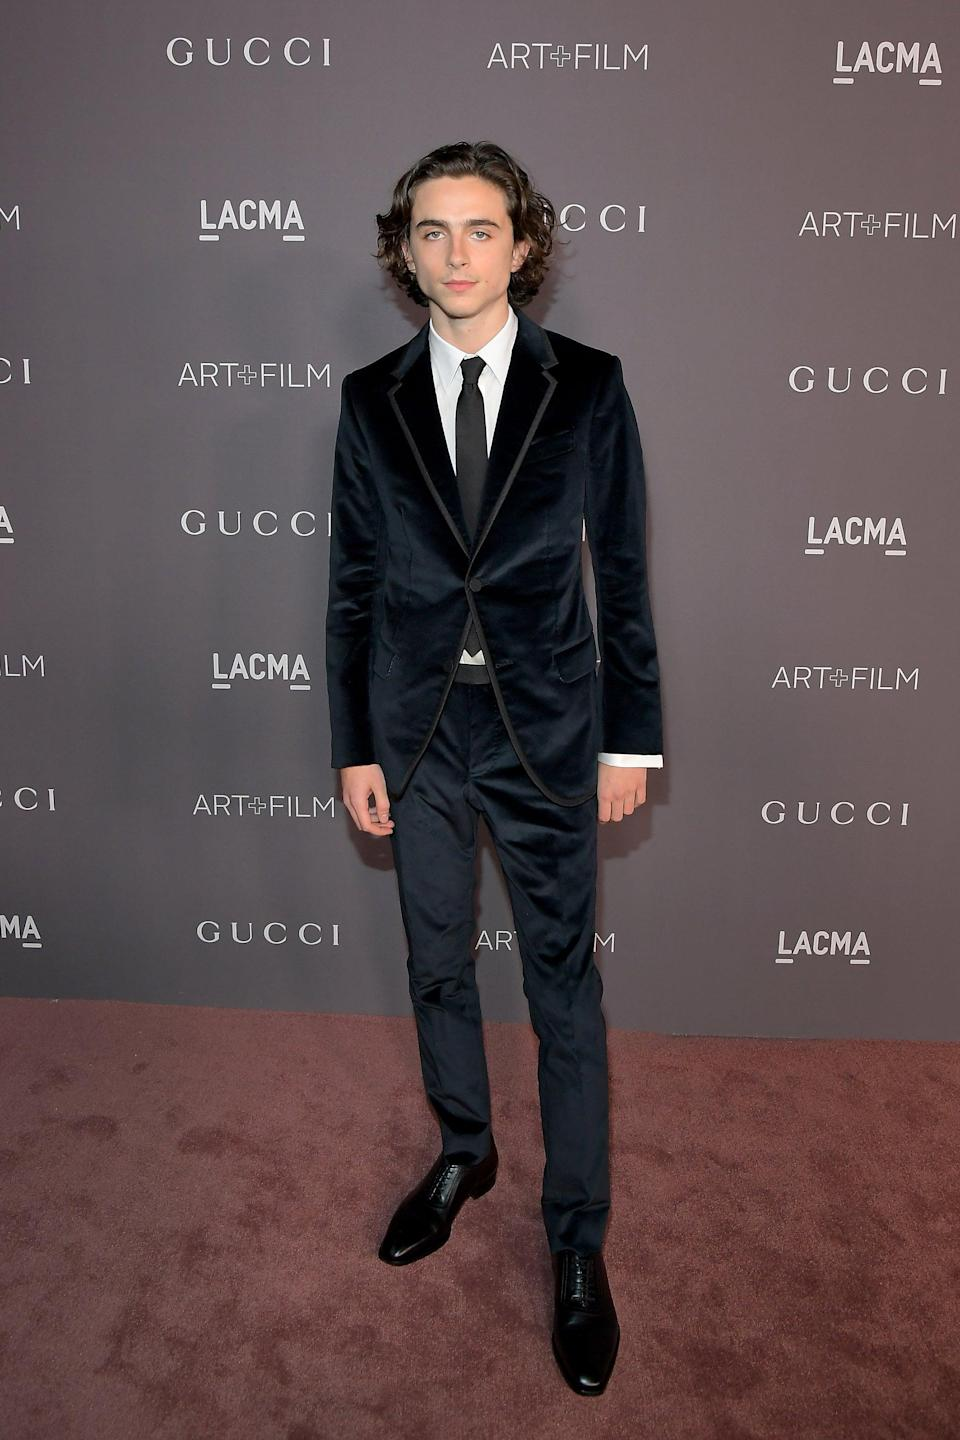 "<h2>Gucci</h2>Move aside Jared Leto and Harry Styles — Timothée Chalamet is quickly becoming our favorite guy in Gucci.<span class=""copyright""> Photo: Charley Gallay/Getty Images.</span>"